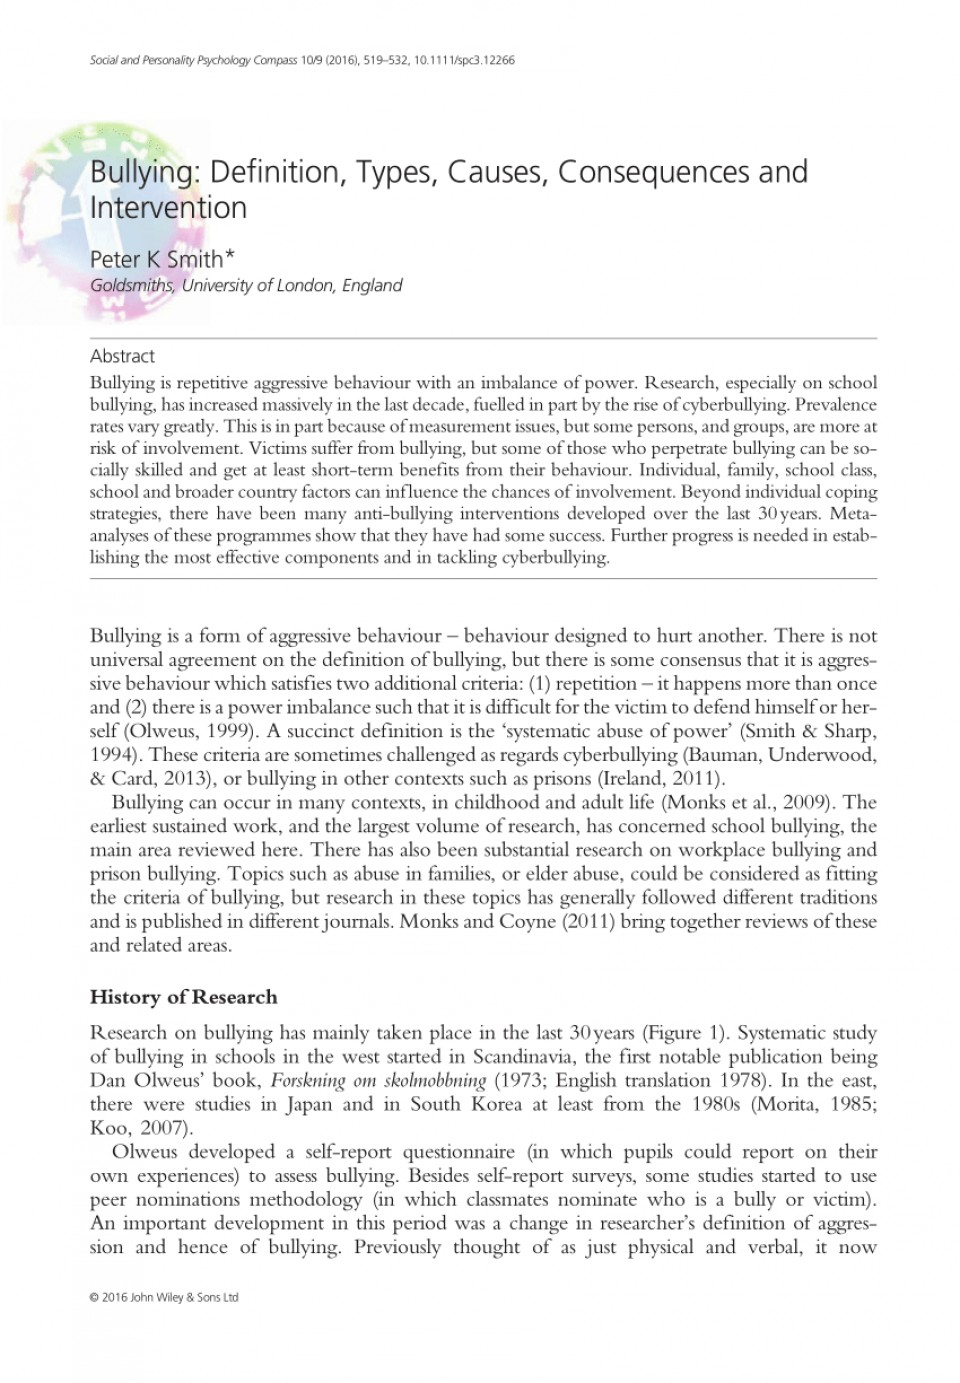 008 Largepreview Research Paper Psychological Effects Of Breathtaking Bullying 960